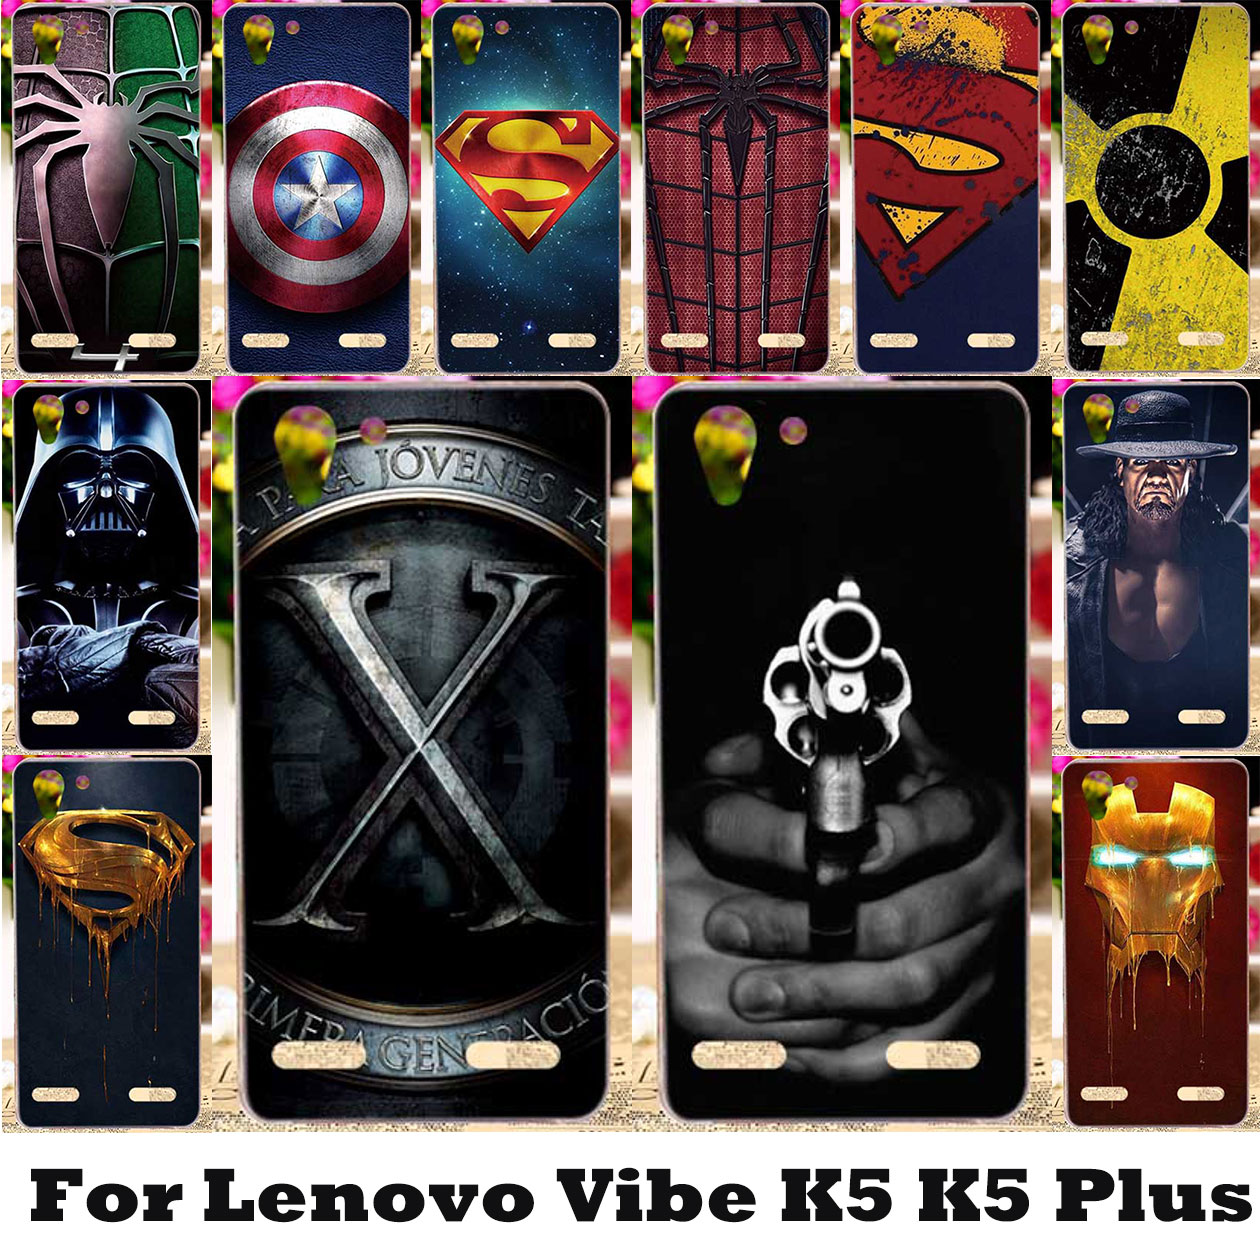 3D DIY Captain Painted <font><b>Cases</b></font> For <font><b>Lenovo</b></font> Vibe K5 K5 Plus Lemon 3 K32C36 A6020 <font><b>A6020a46</b></font> A6020a40 Cover Silicone Plastic Back Bag image